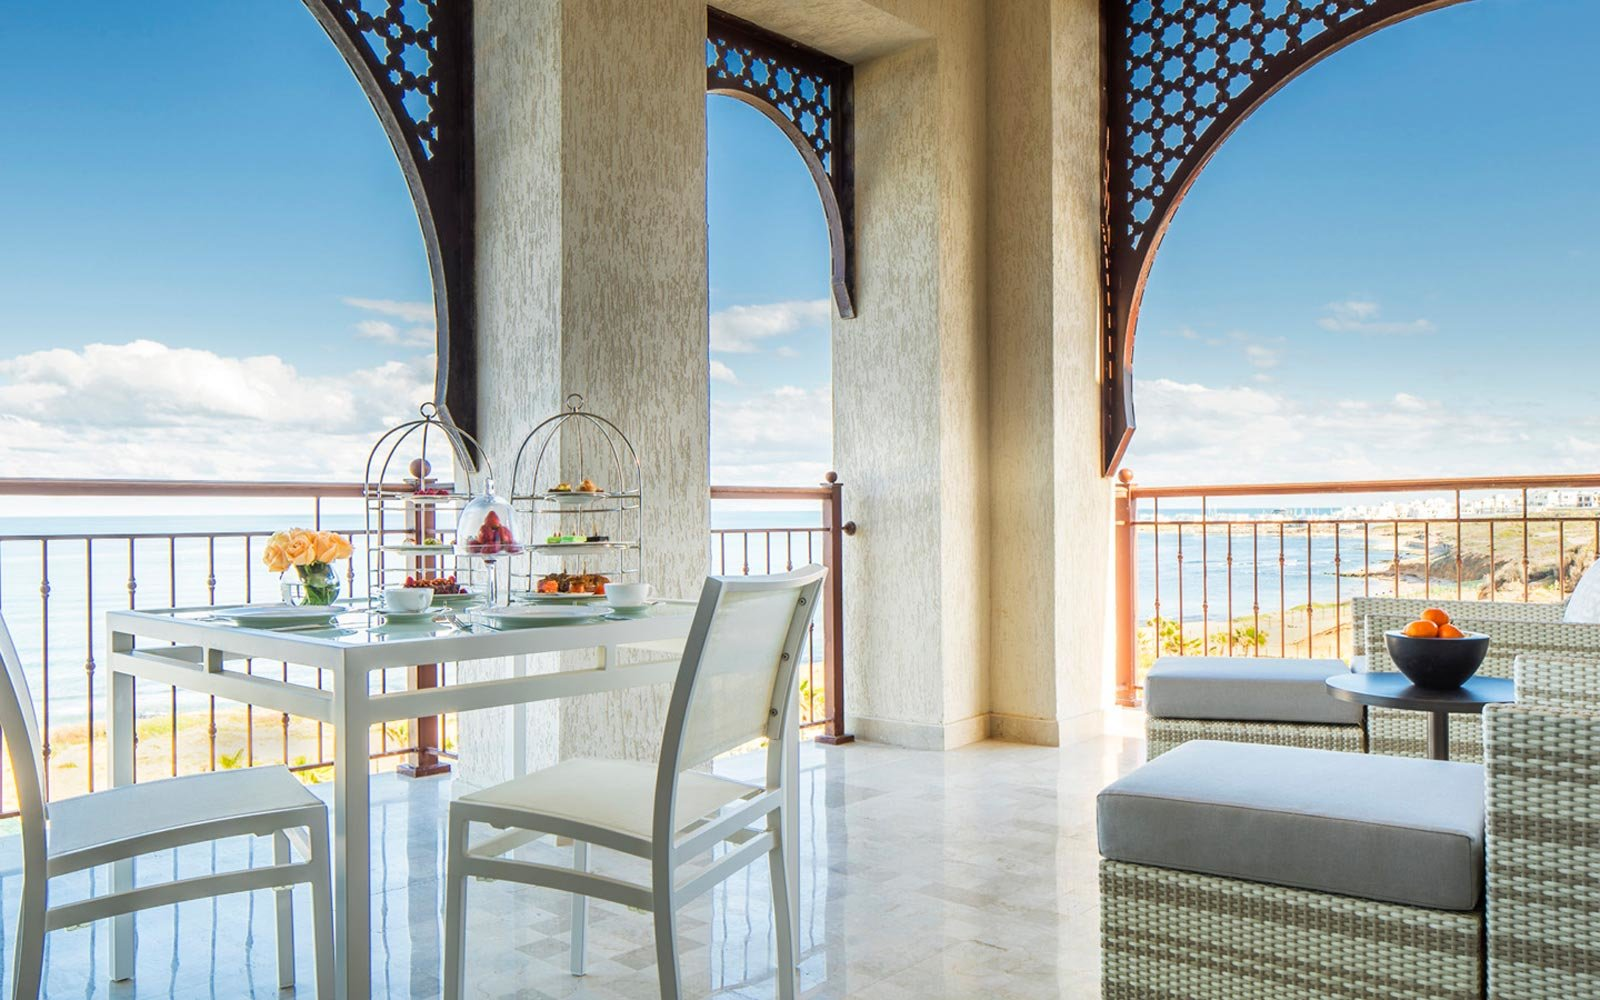 Balcony of the Four Seasons Hotel Tunis